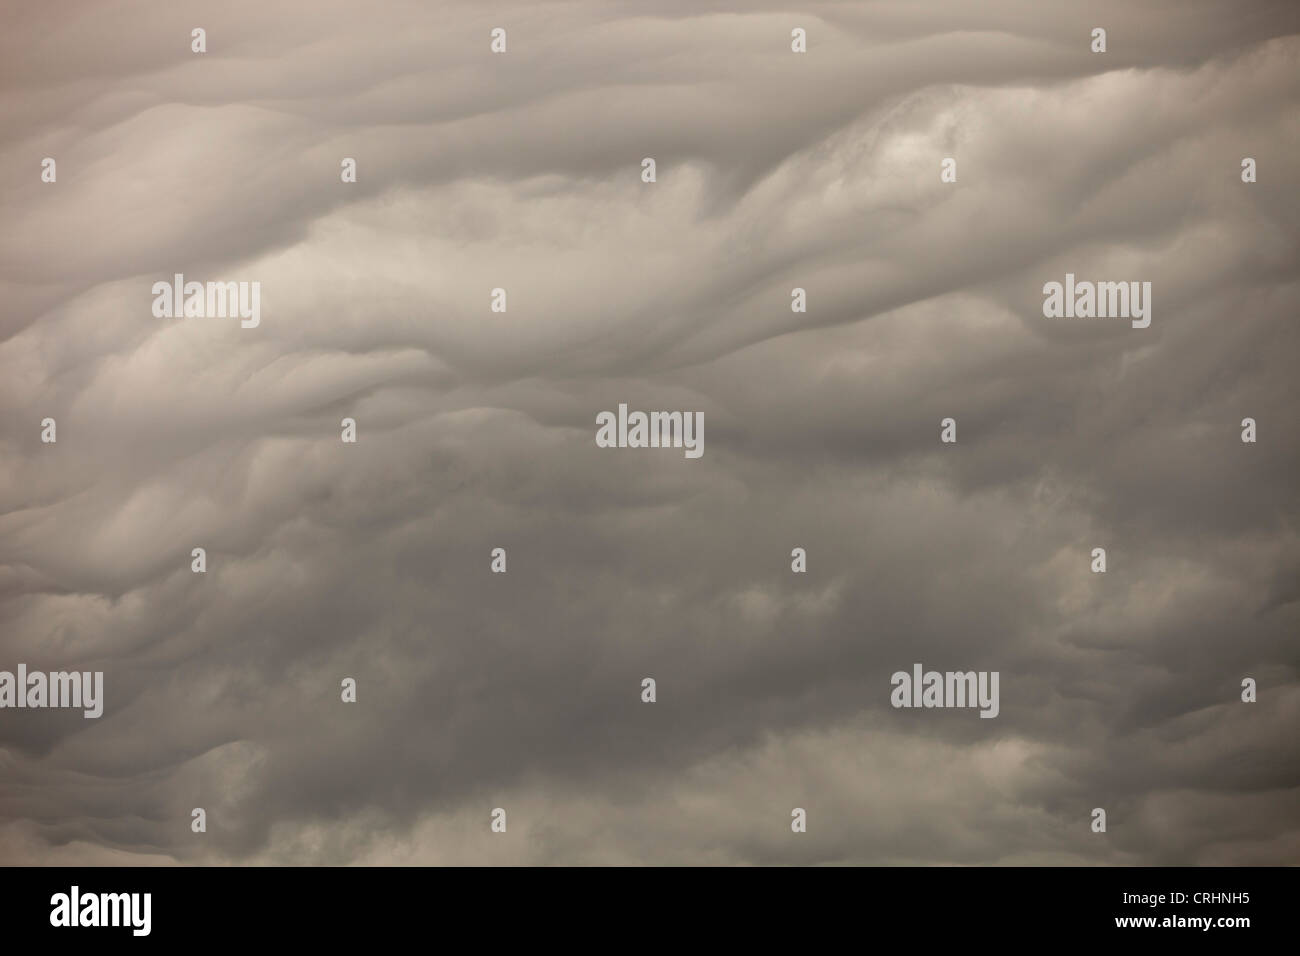 Occluded Front Stock Photos Occluded Front Stock Images Alamy